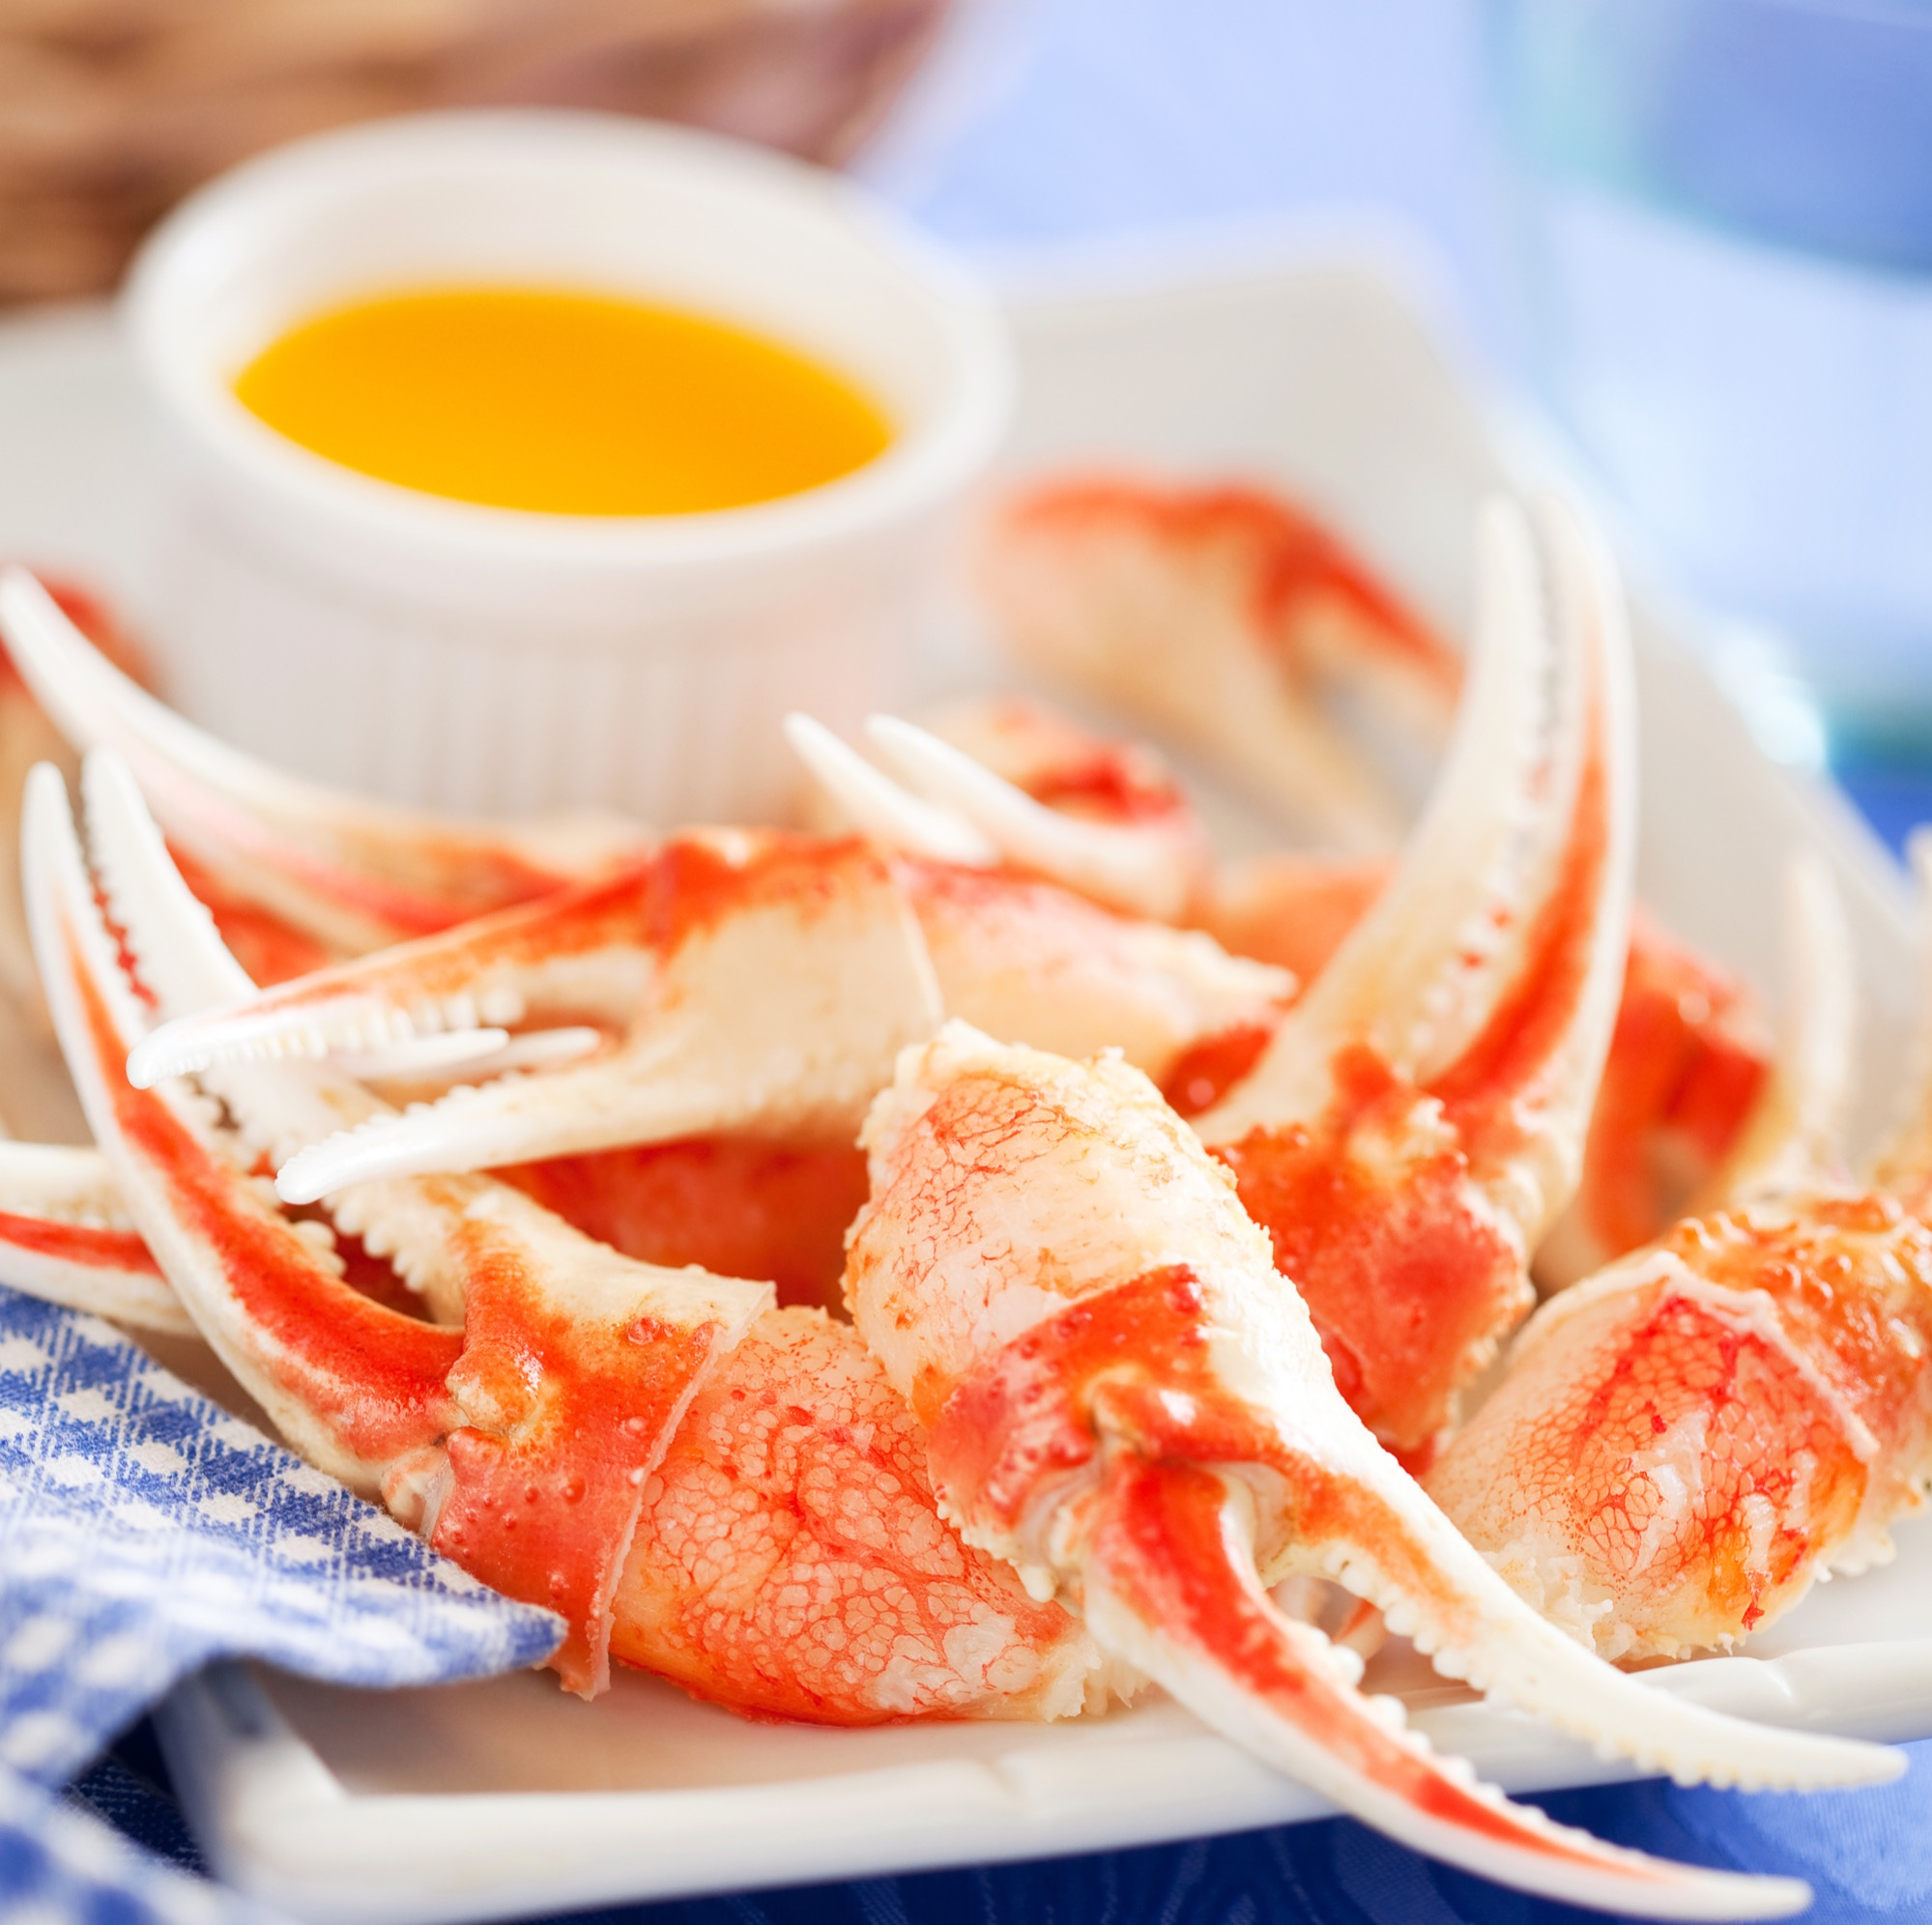 Boiled crab claws with orange sauce, sel